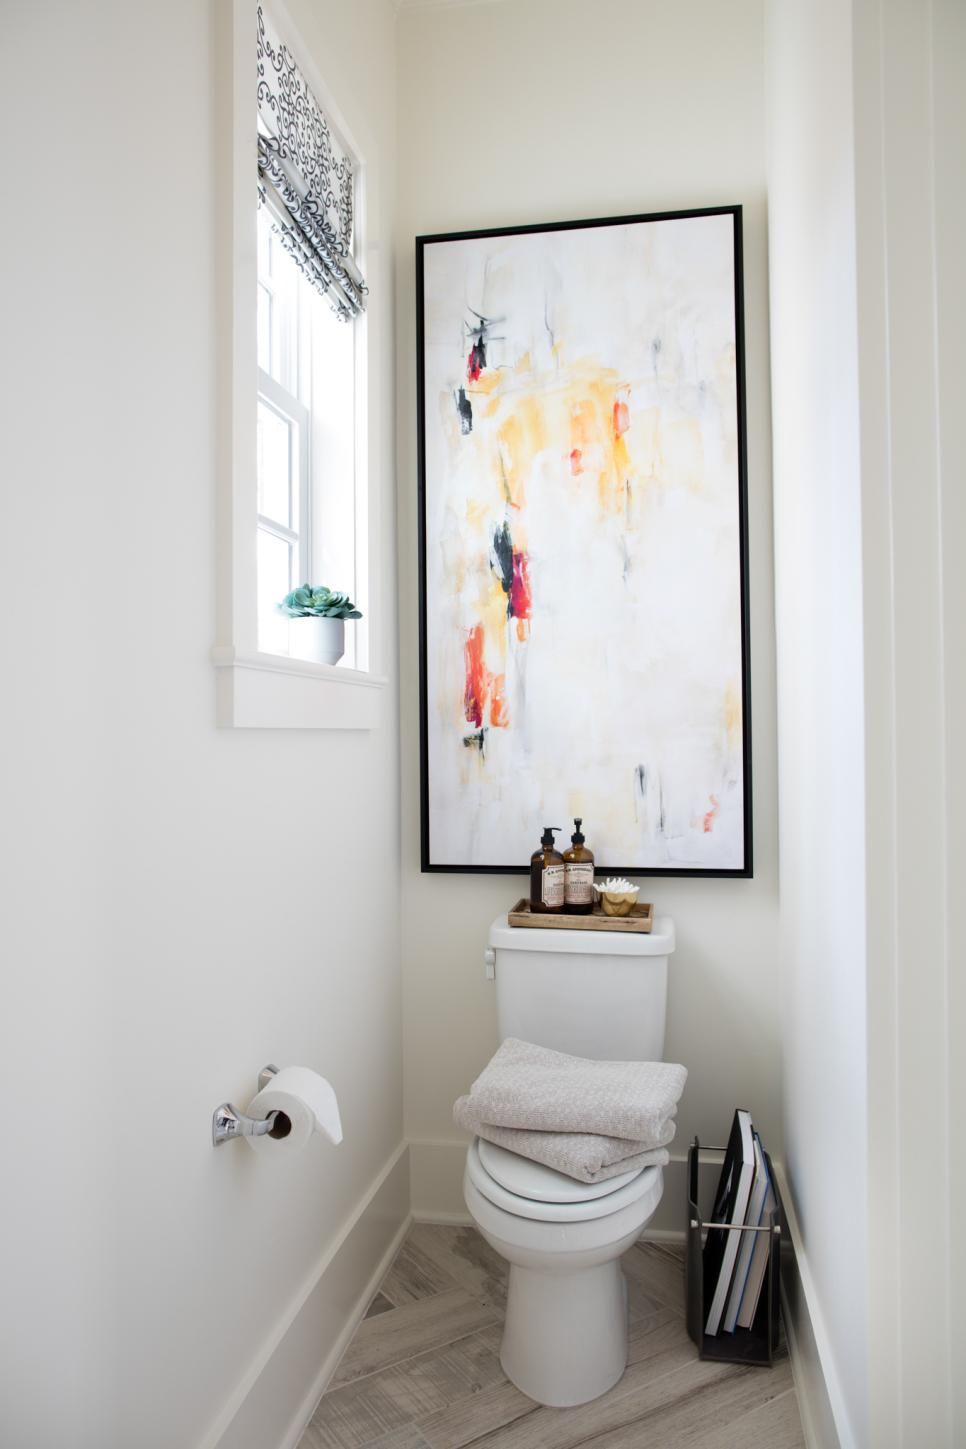 Emily brooks uncovers the bathroom basics that are vital to know - Pictures Of The Hgtv Smart Home 2016 Master Bathroom Closet